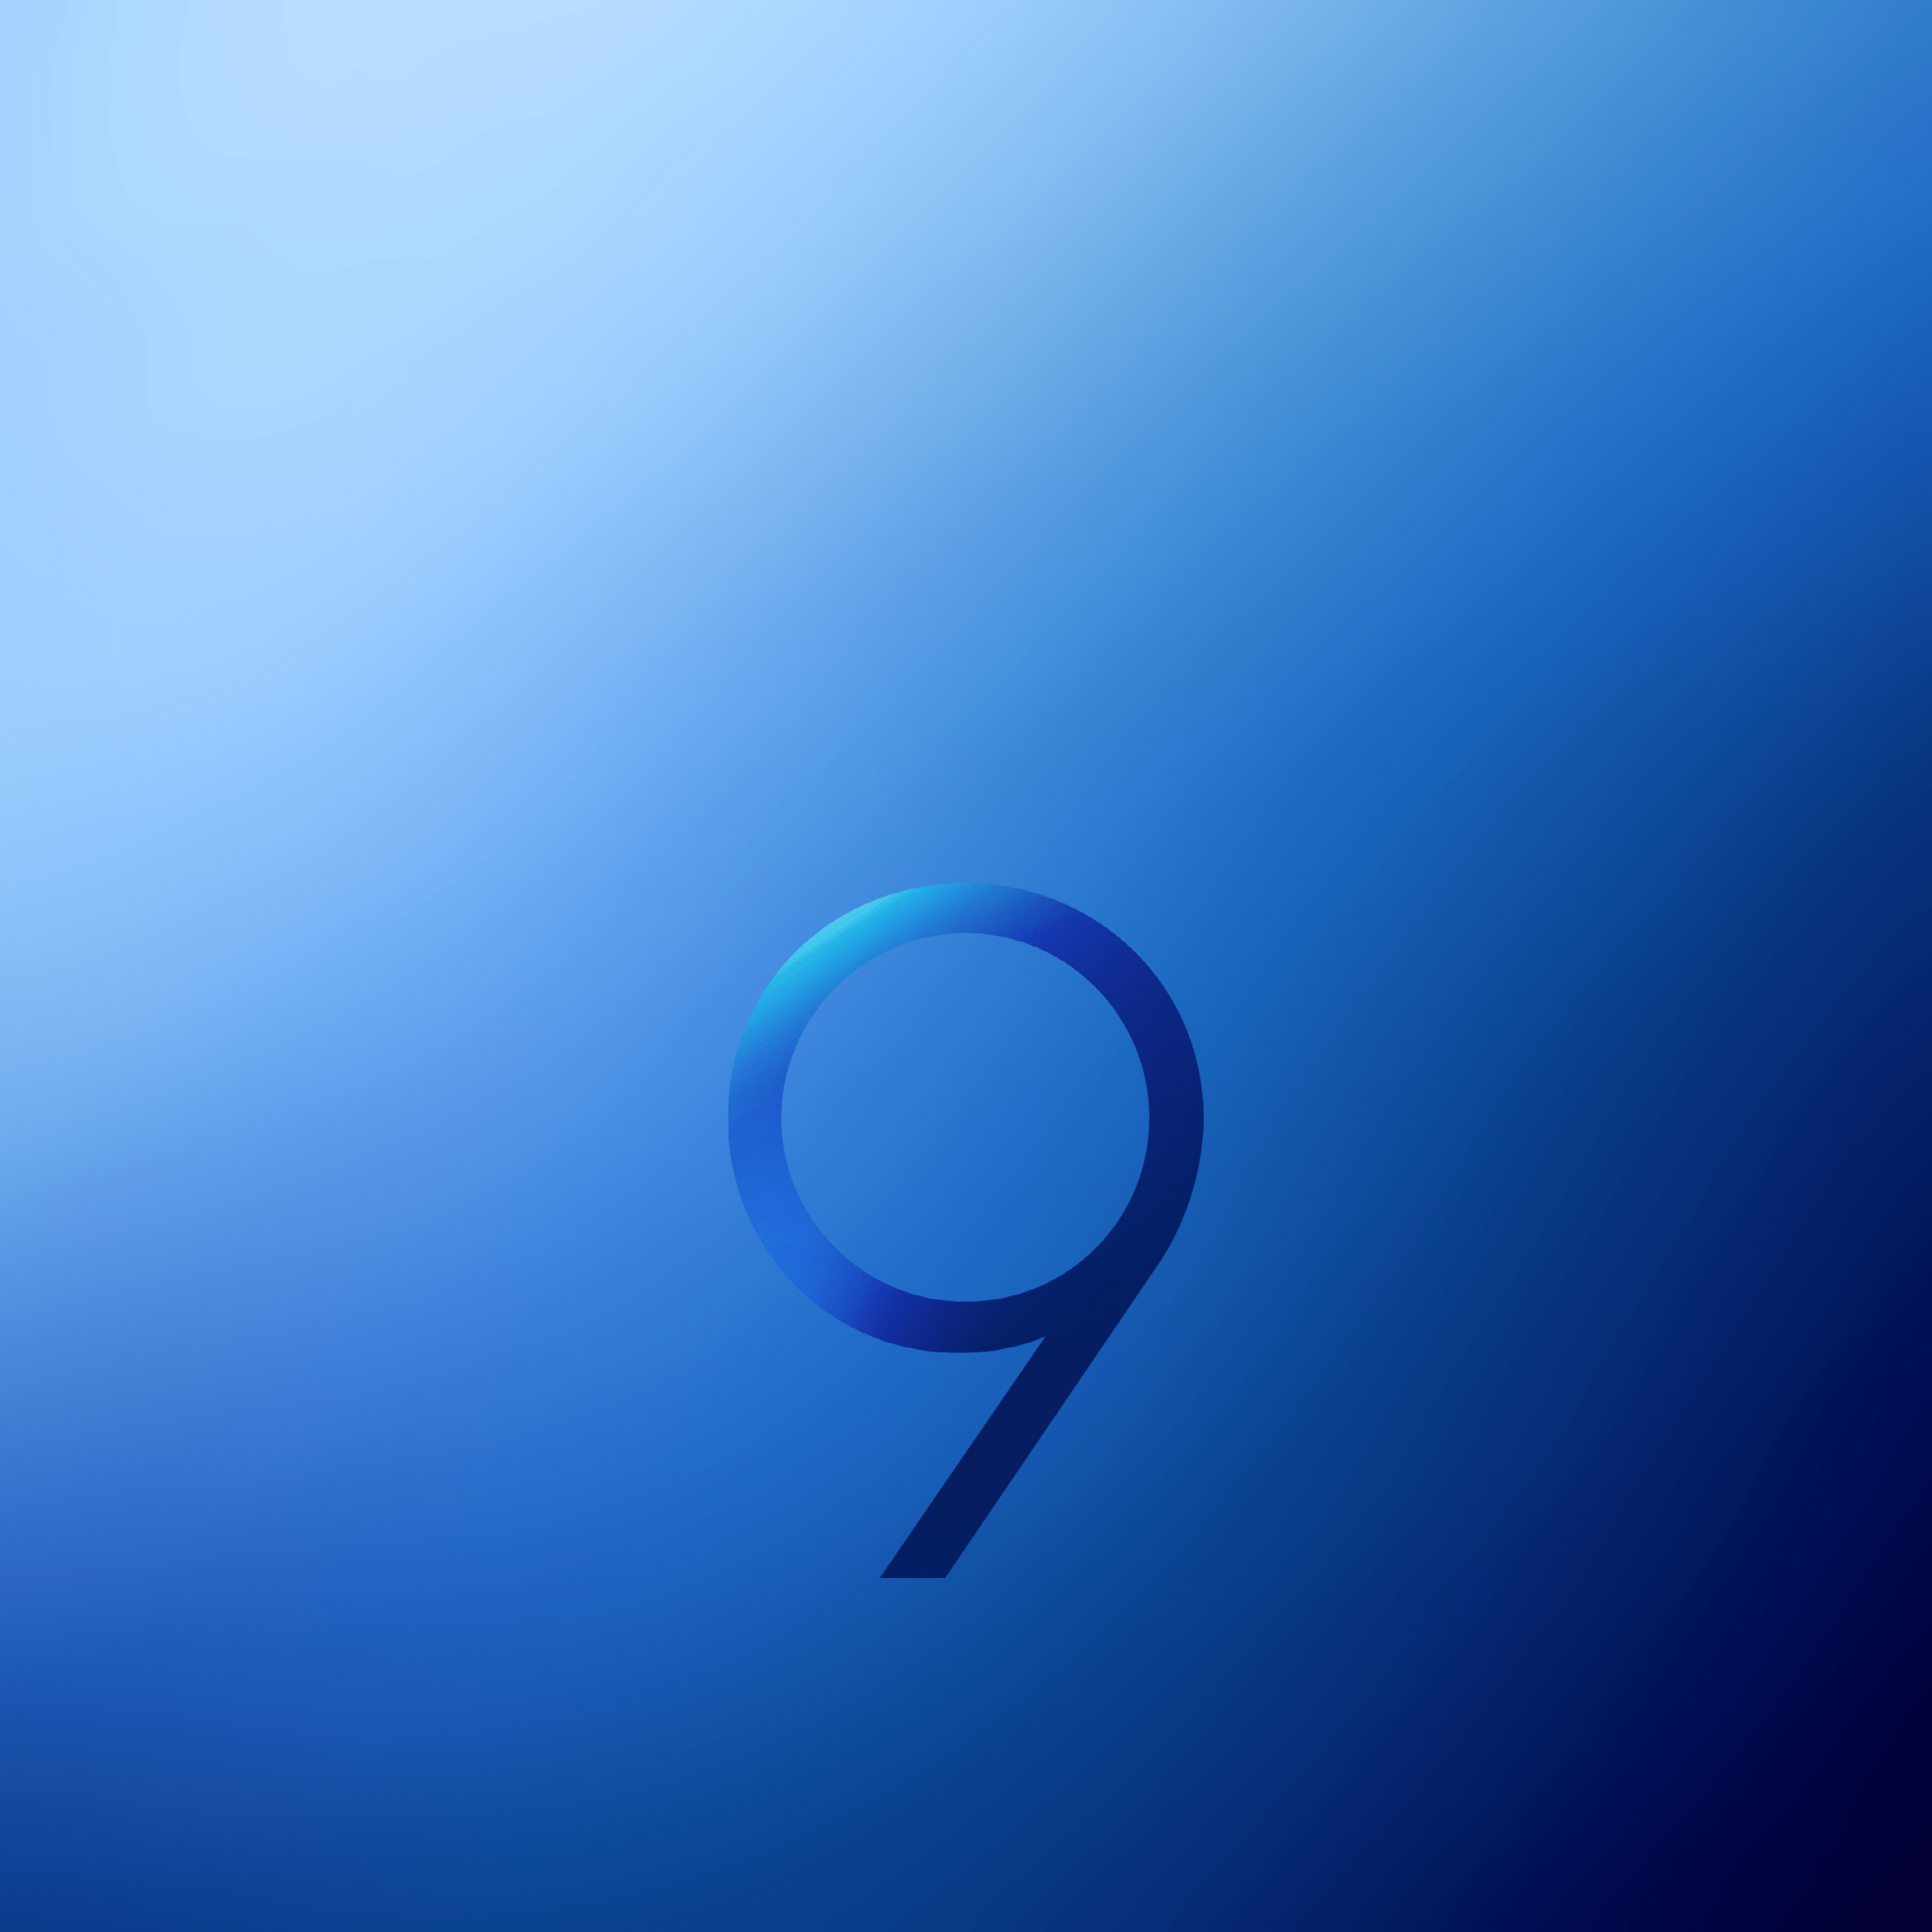 Download The Official Samsung Galaxy S9 S9 Wallpapers Here